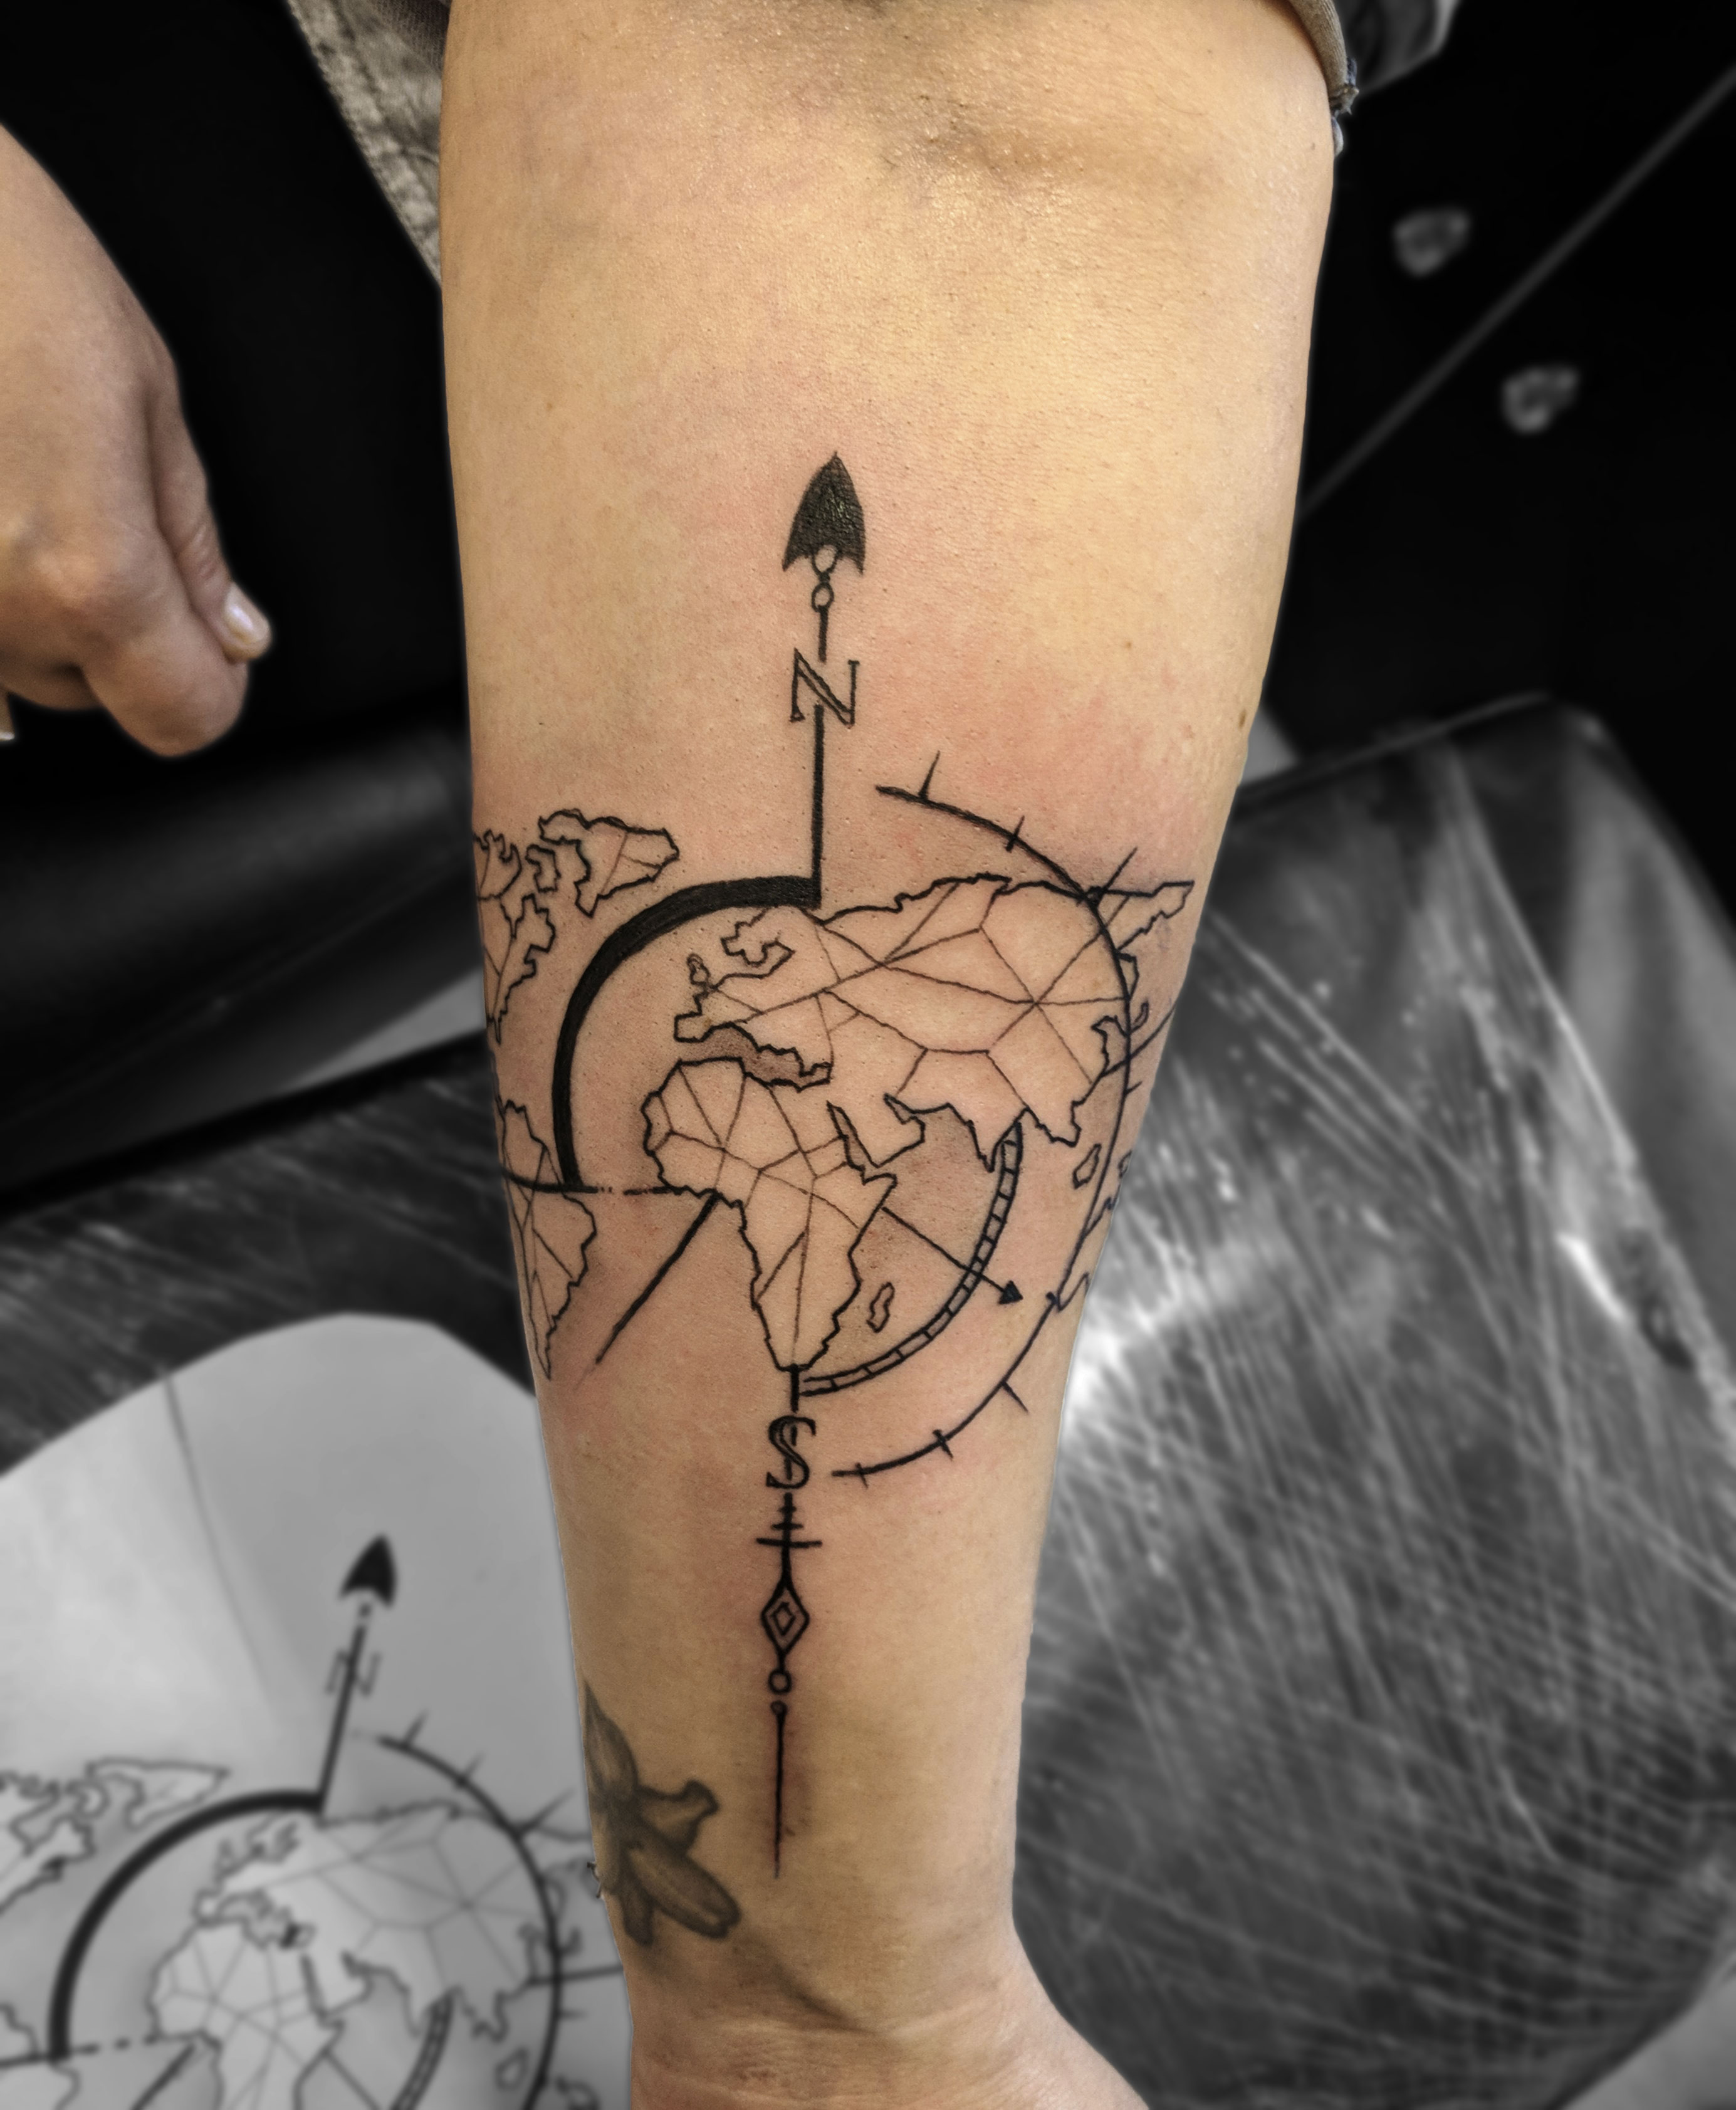 tatouage avant-bras carte du monde tattoo map world trip lyon corbas